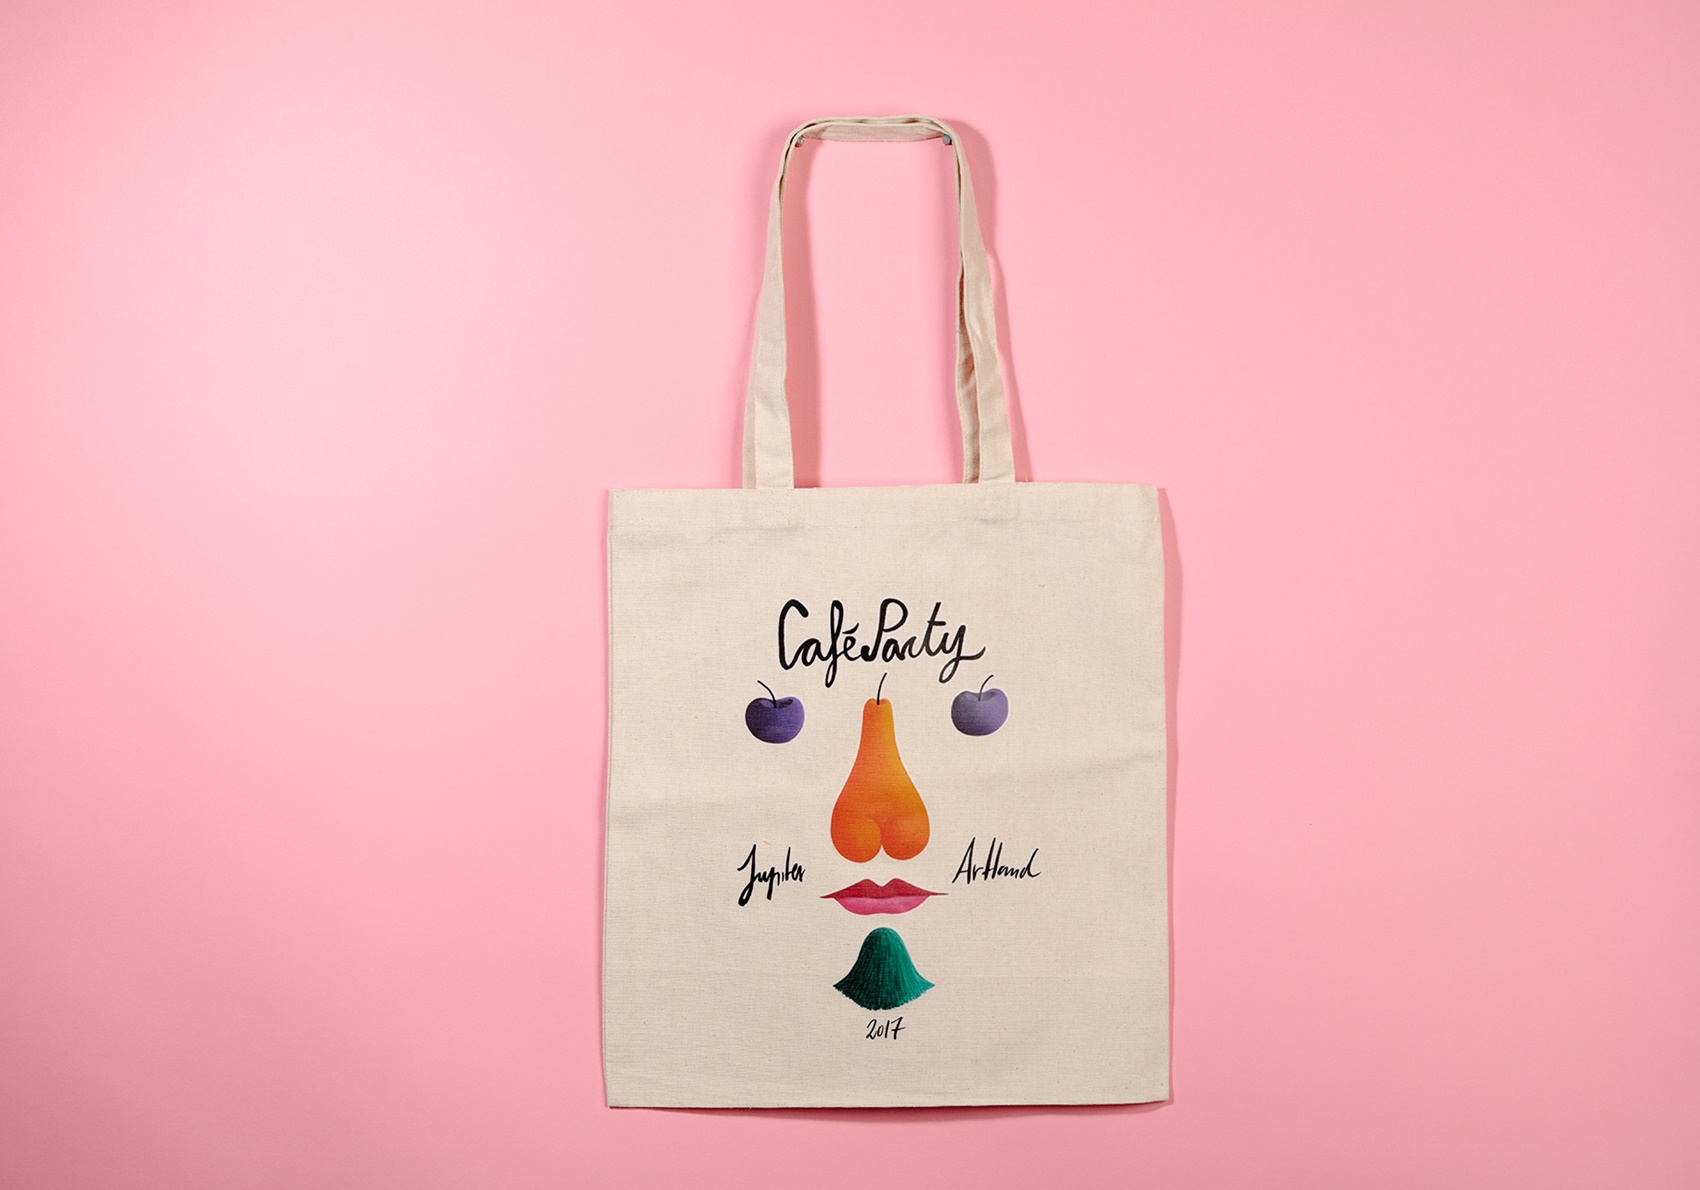 Café Party Tote Bag